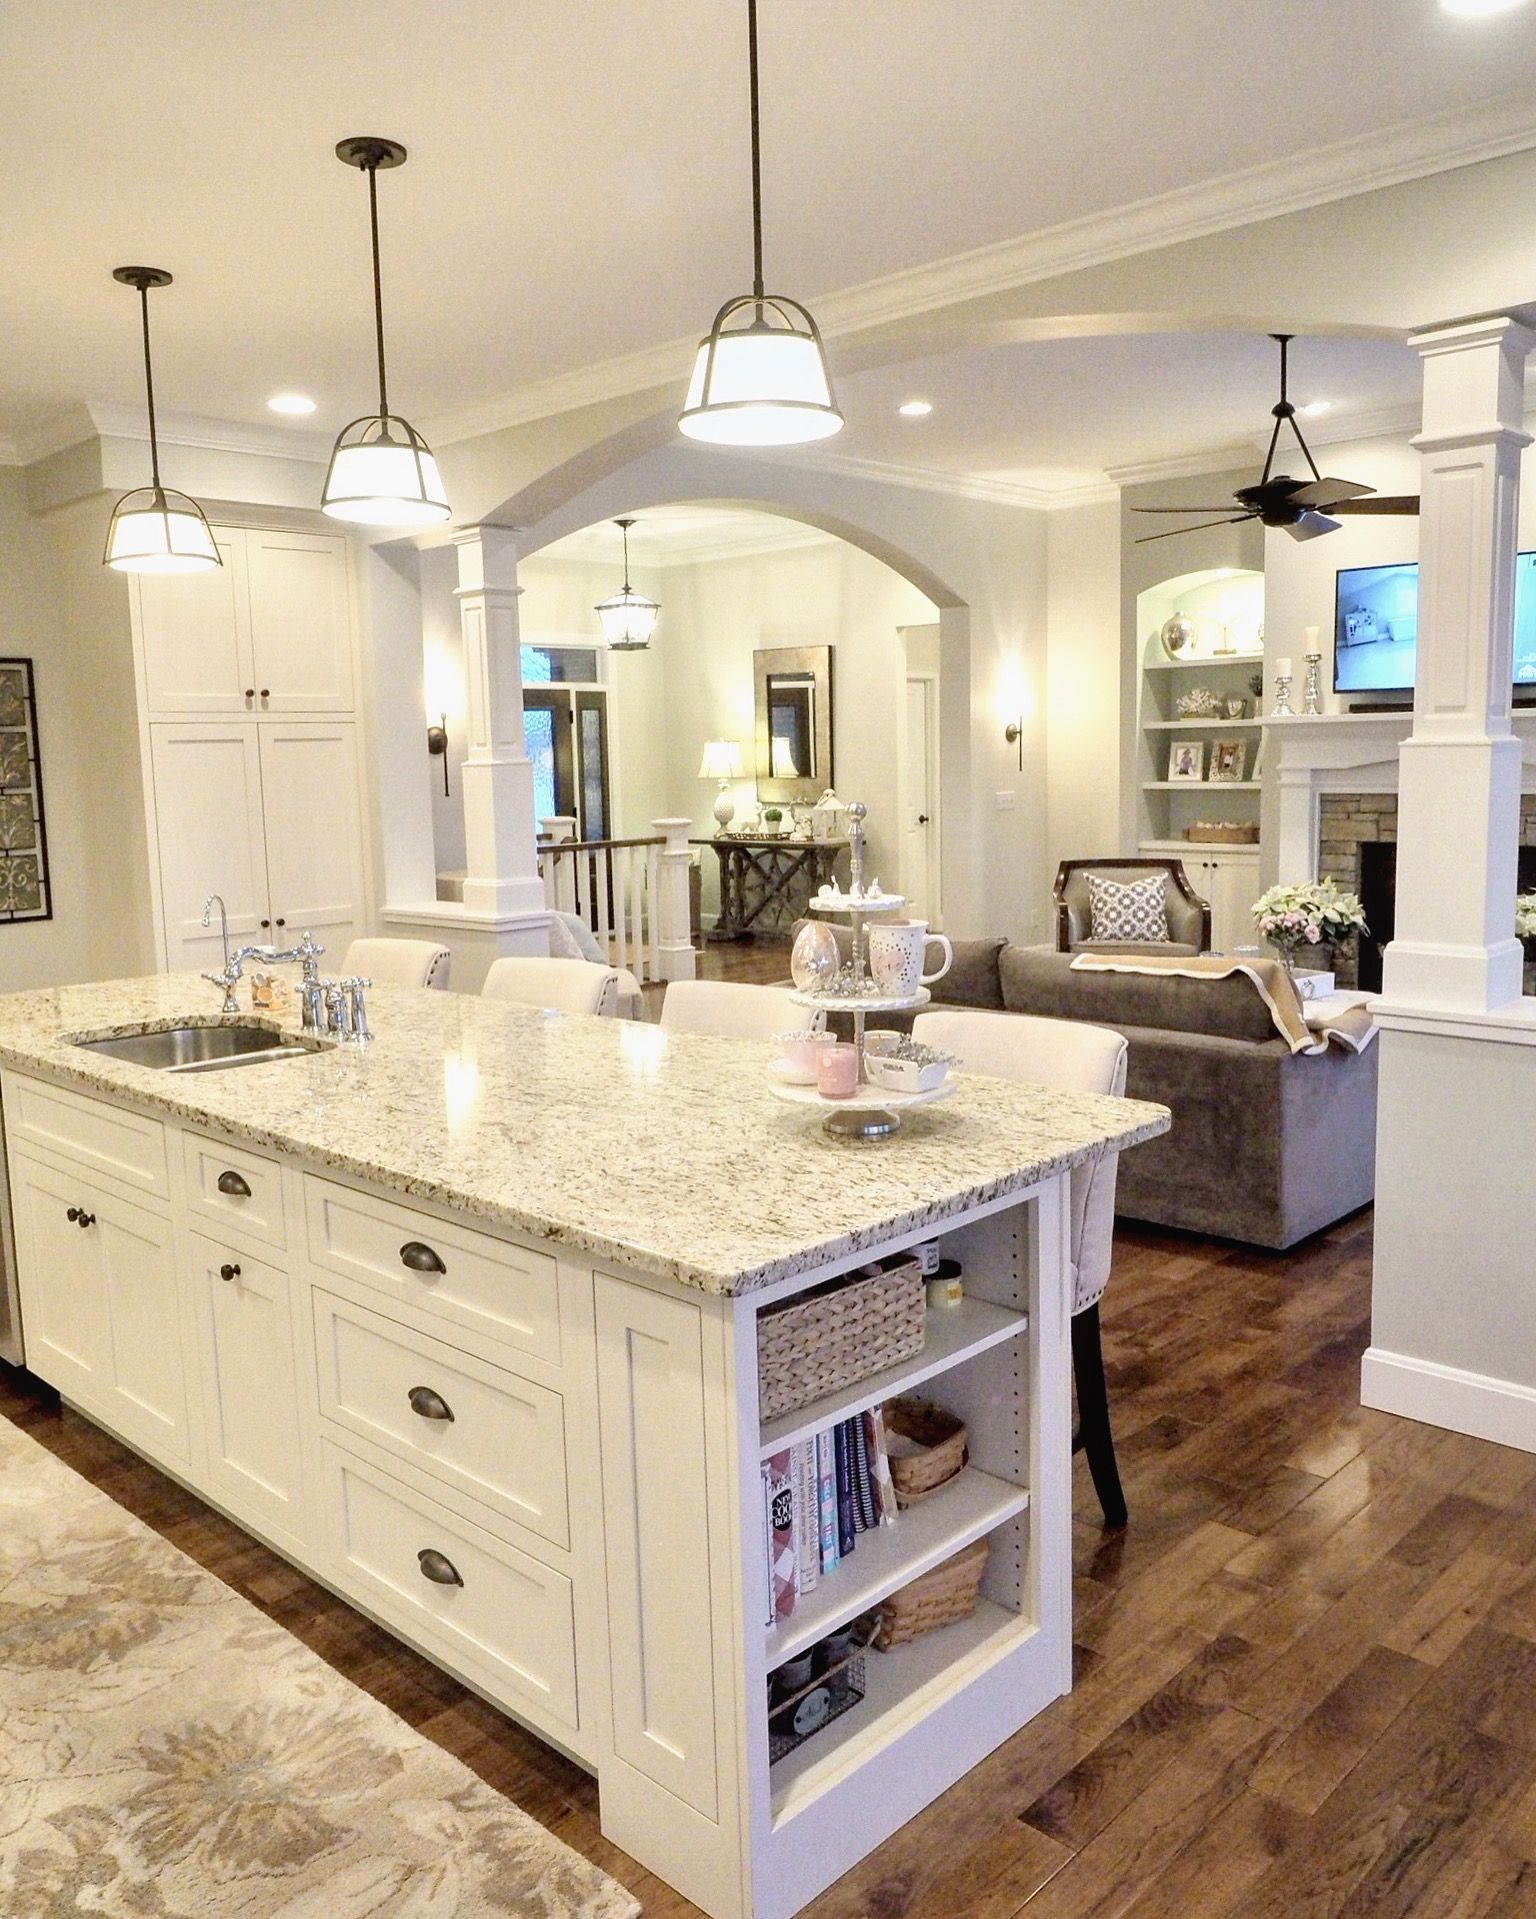 White Kitchen Designs On Open Plan: White Kitchen, Off-white Cabinets, Sherwin Williams